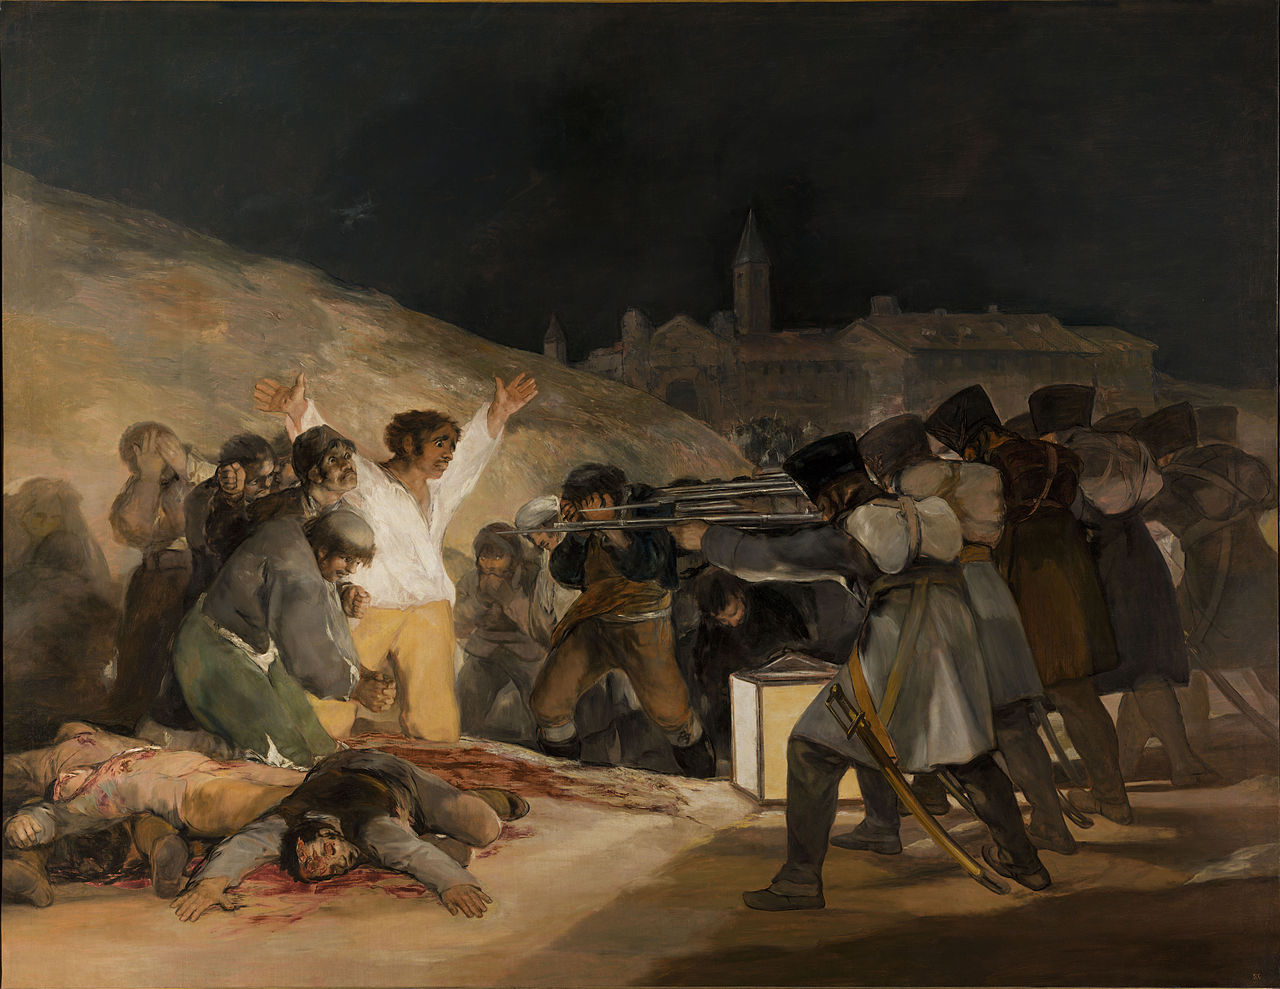 Francisco Goya - The Third of May